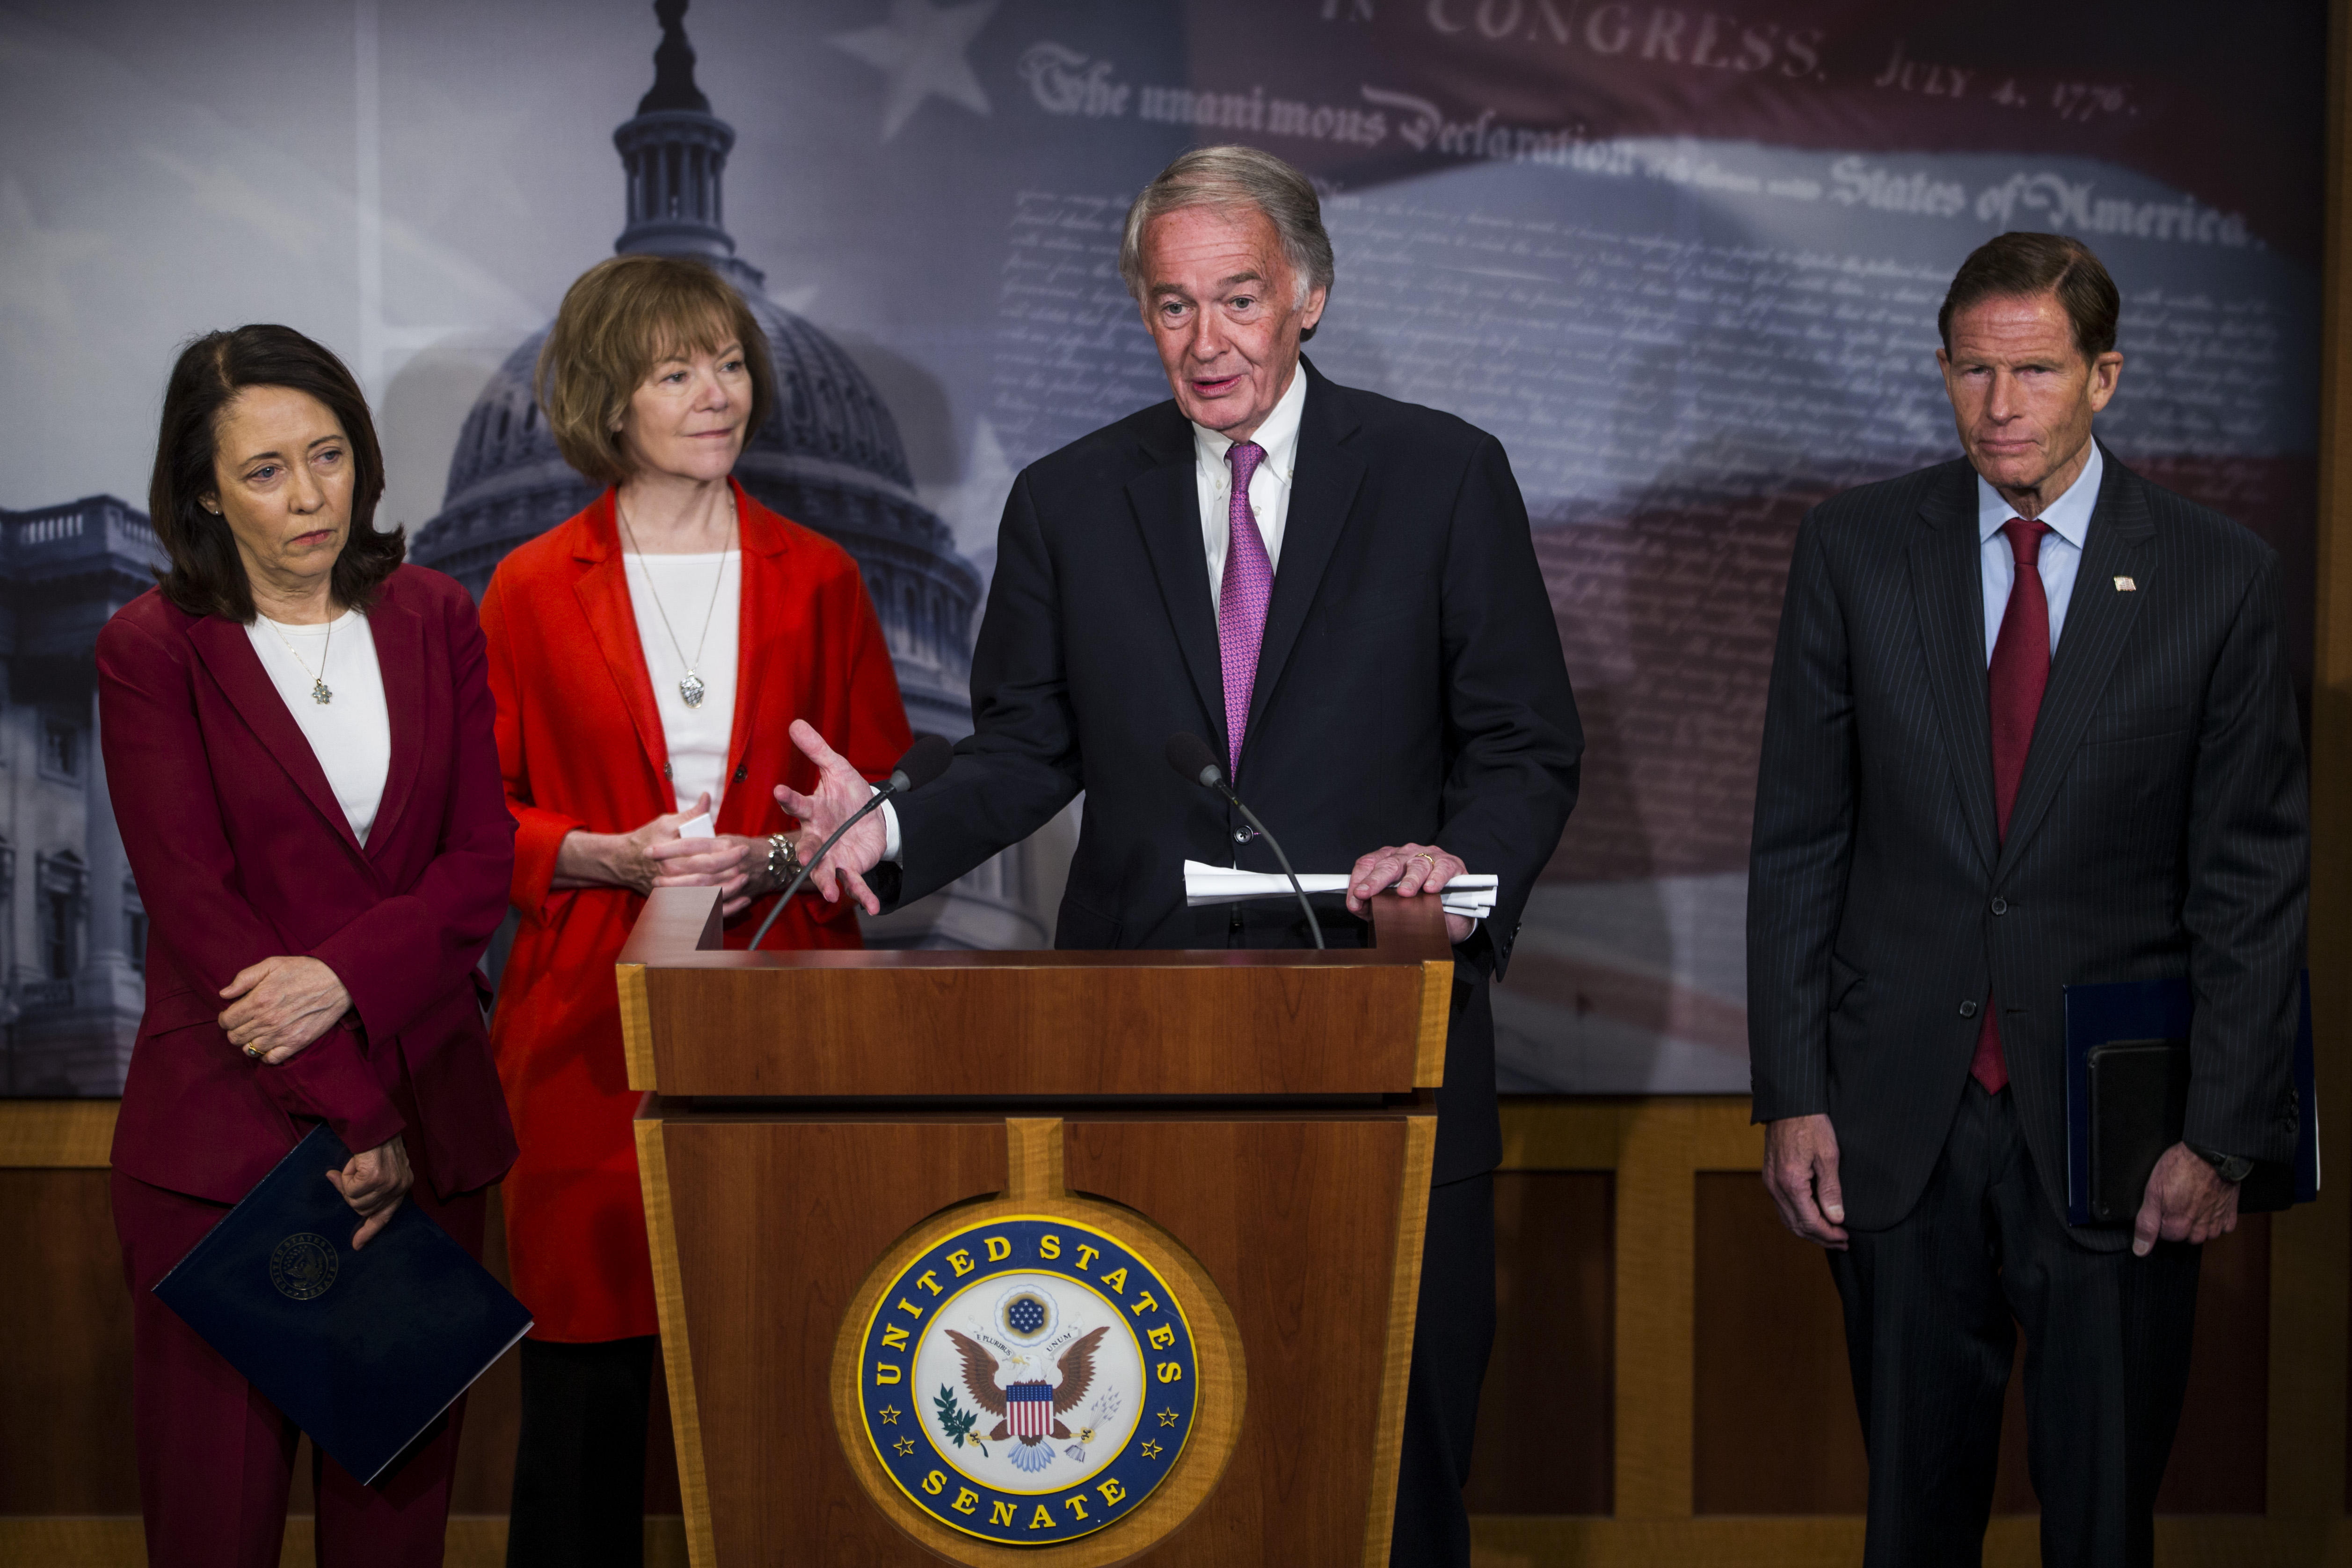 Sen. Ed Markey speaks during a news conference on a petition to force a vote on net neutrality on Capitol Hill. Also pictured are senators Maria Cantwell, Tina Smith and Richard Blumenthal.